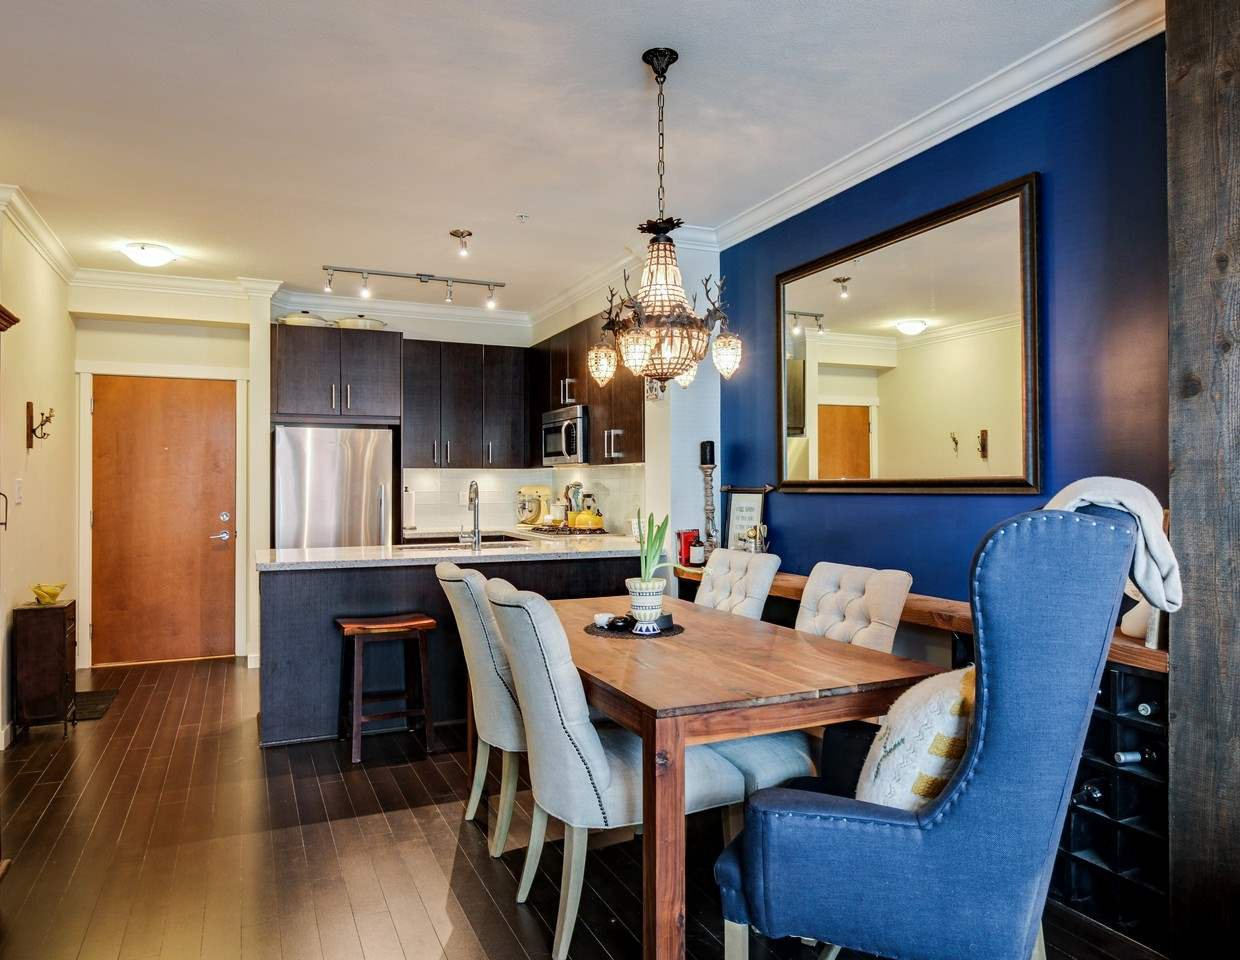 Photo 4: Photos: 319 119 W 22ND STREET in North Vancouver: Central Lonsdale Condo for sale : MLS®# R2047201